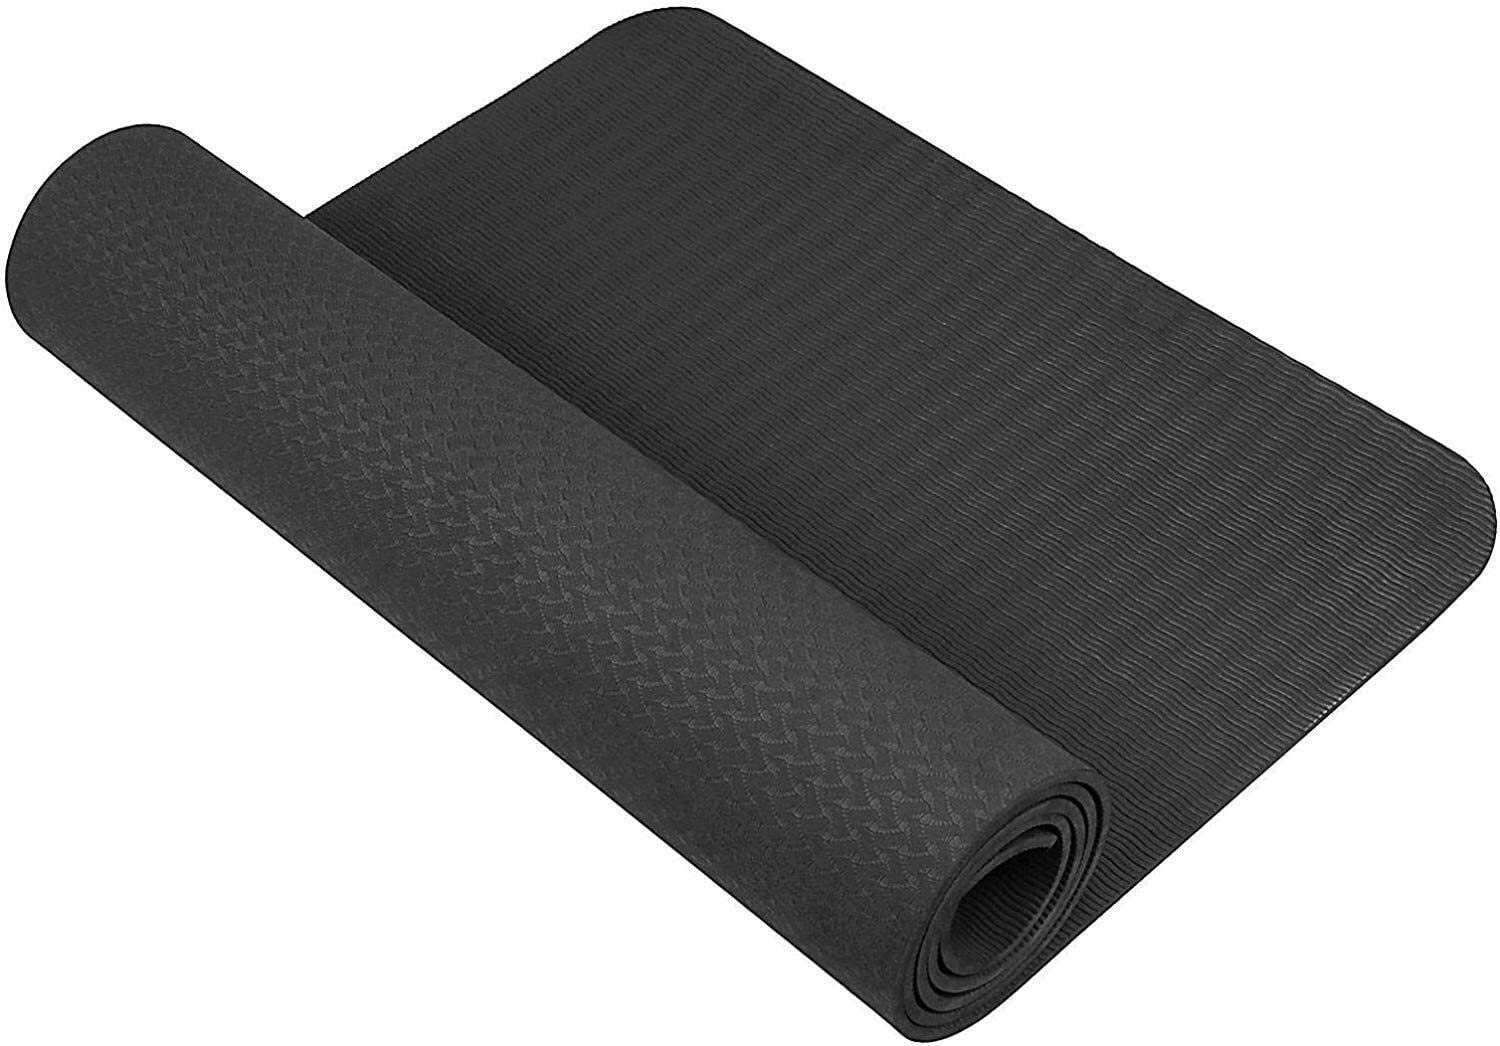 GJF Yoga Mat Non-Slip Carryable Pil Handle Some reservation for Free shipping New Exercise